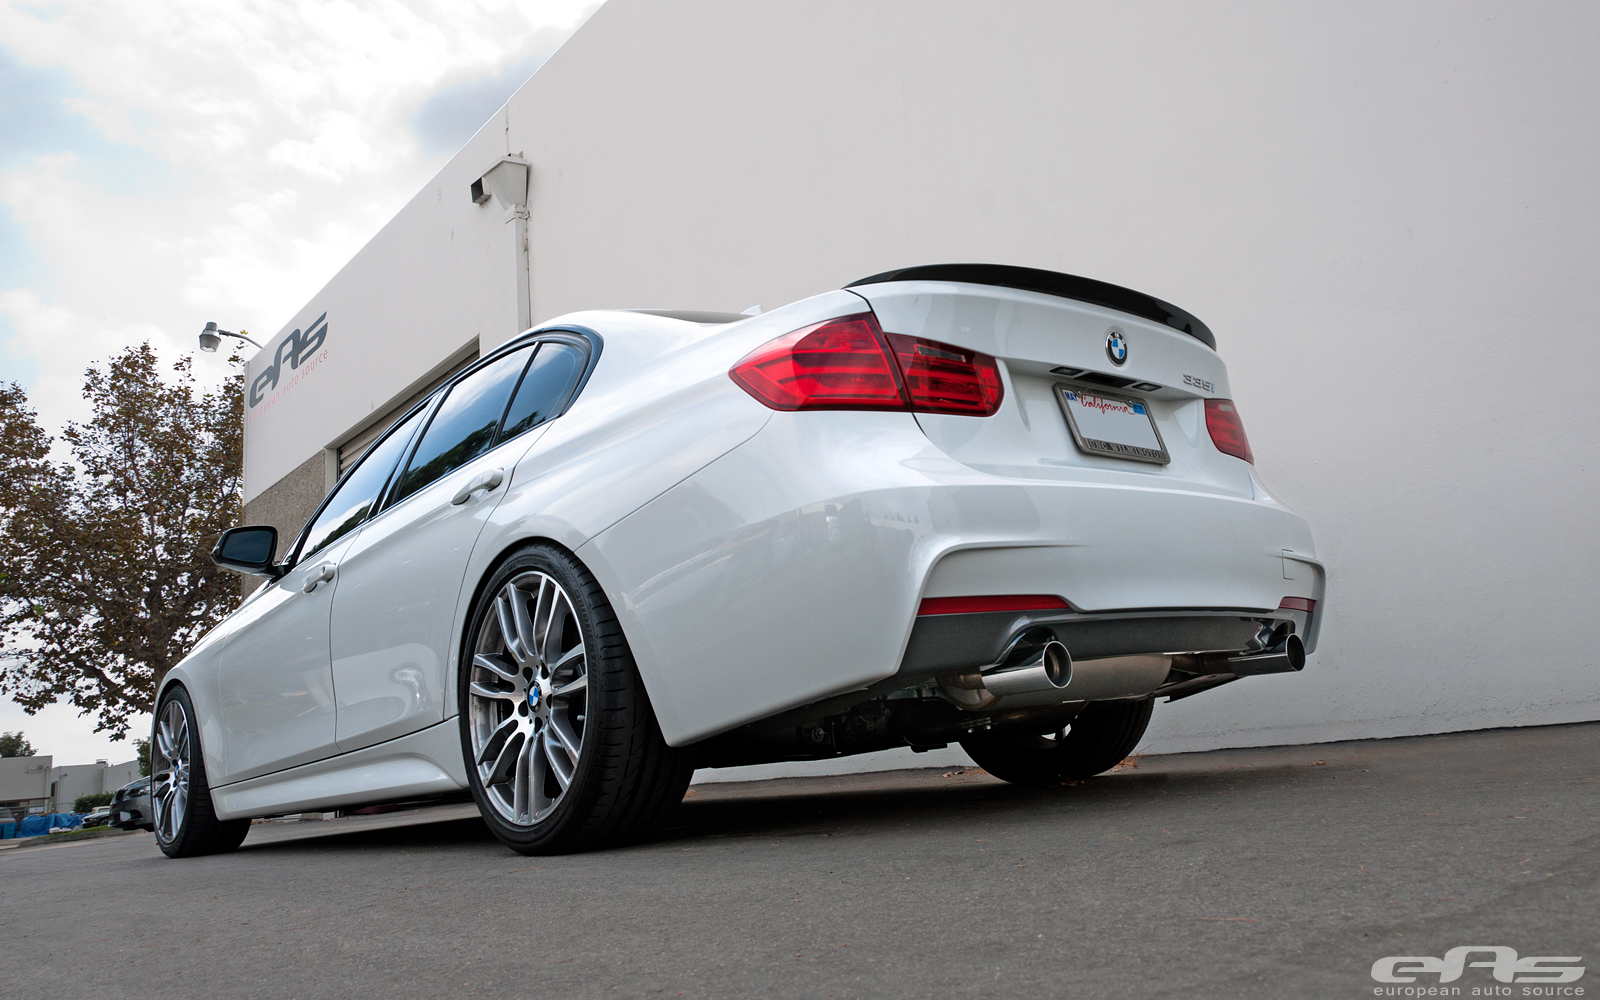 Bmw F30 335i Gets Bilstein Coilovers At Eas Autoevolution